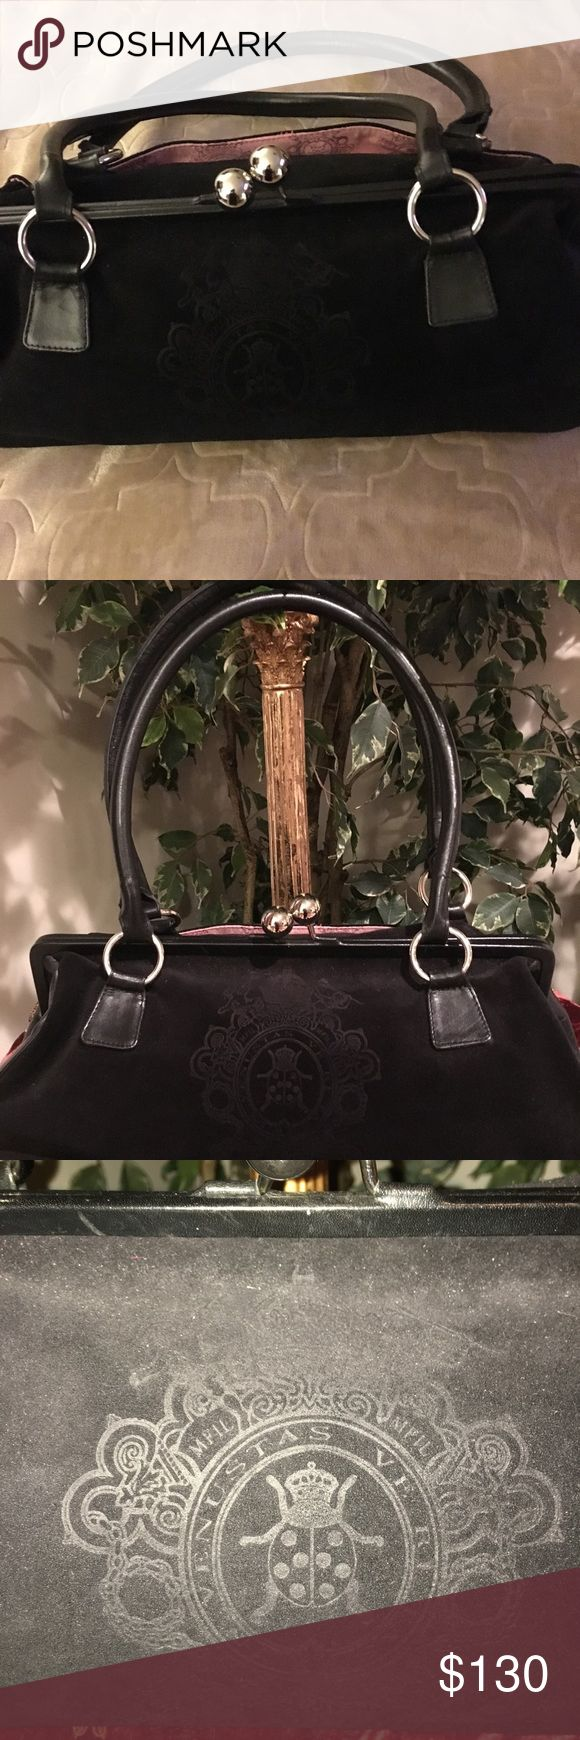 My Flat In London handbag Black rich leather and suede My Flat In London handbag. Shoulder straps, silver hardware, silver feet. Gorgeous silver ball closure.inside pocket and very roomy. My Flat in London Bags Shoulder Bags